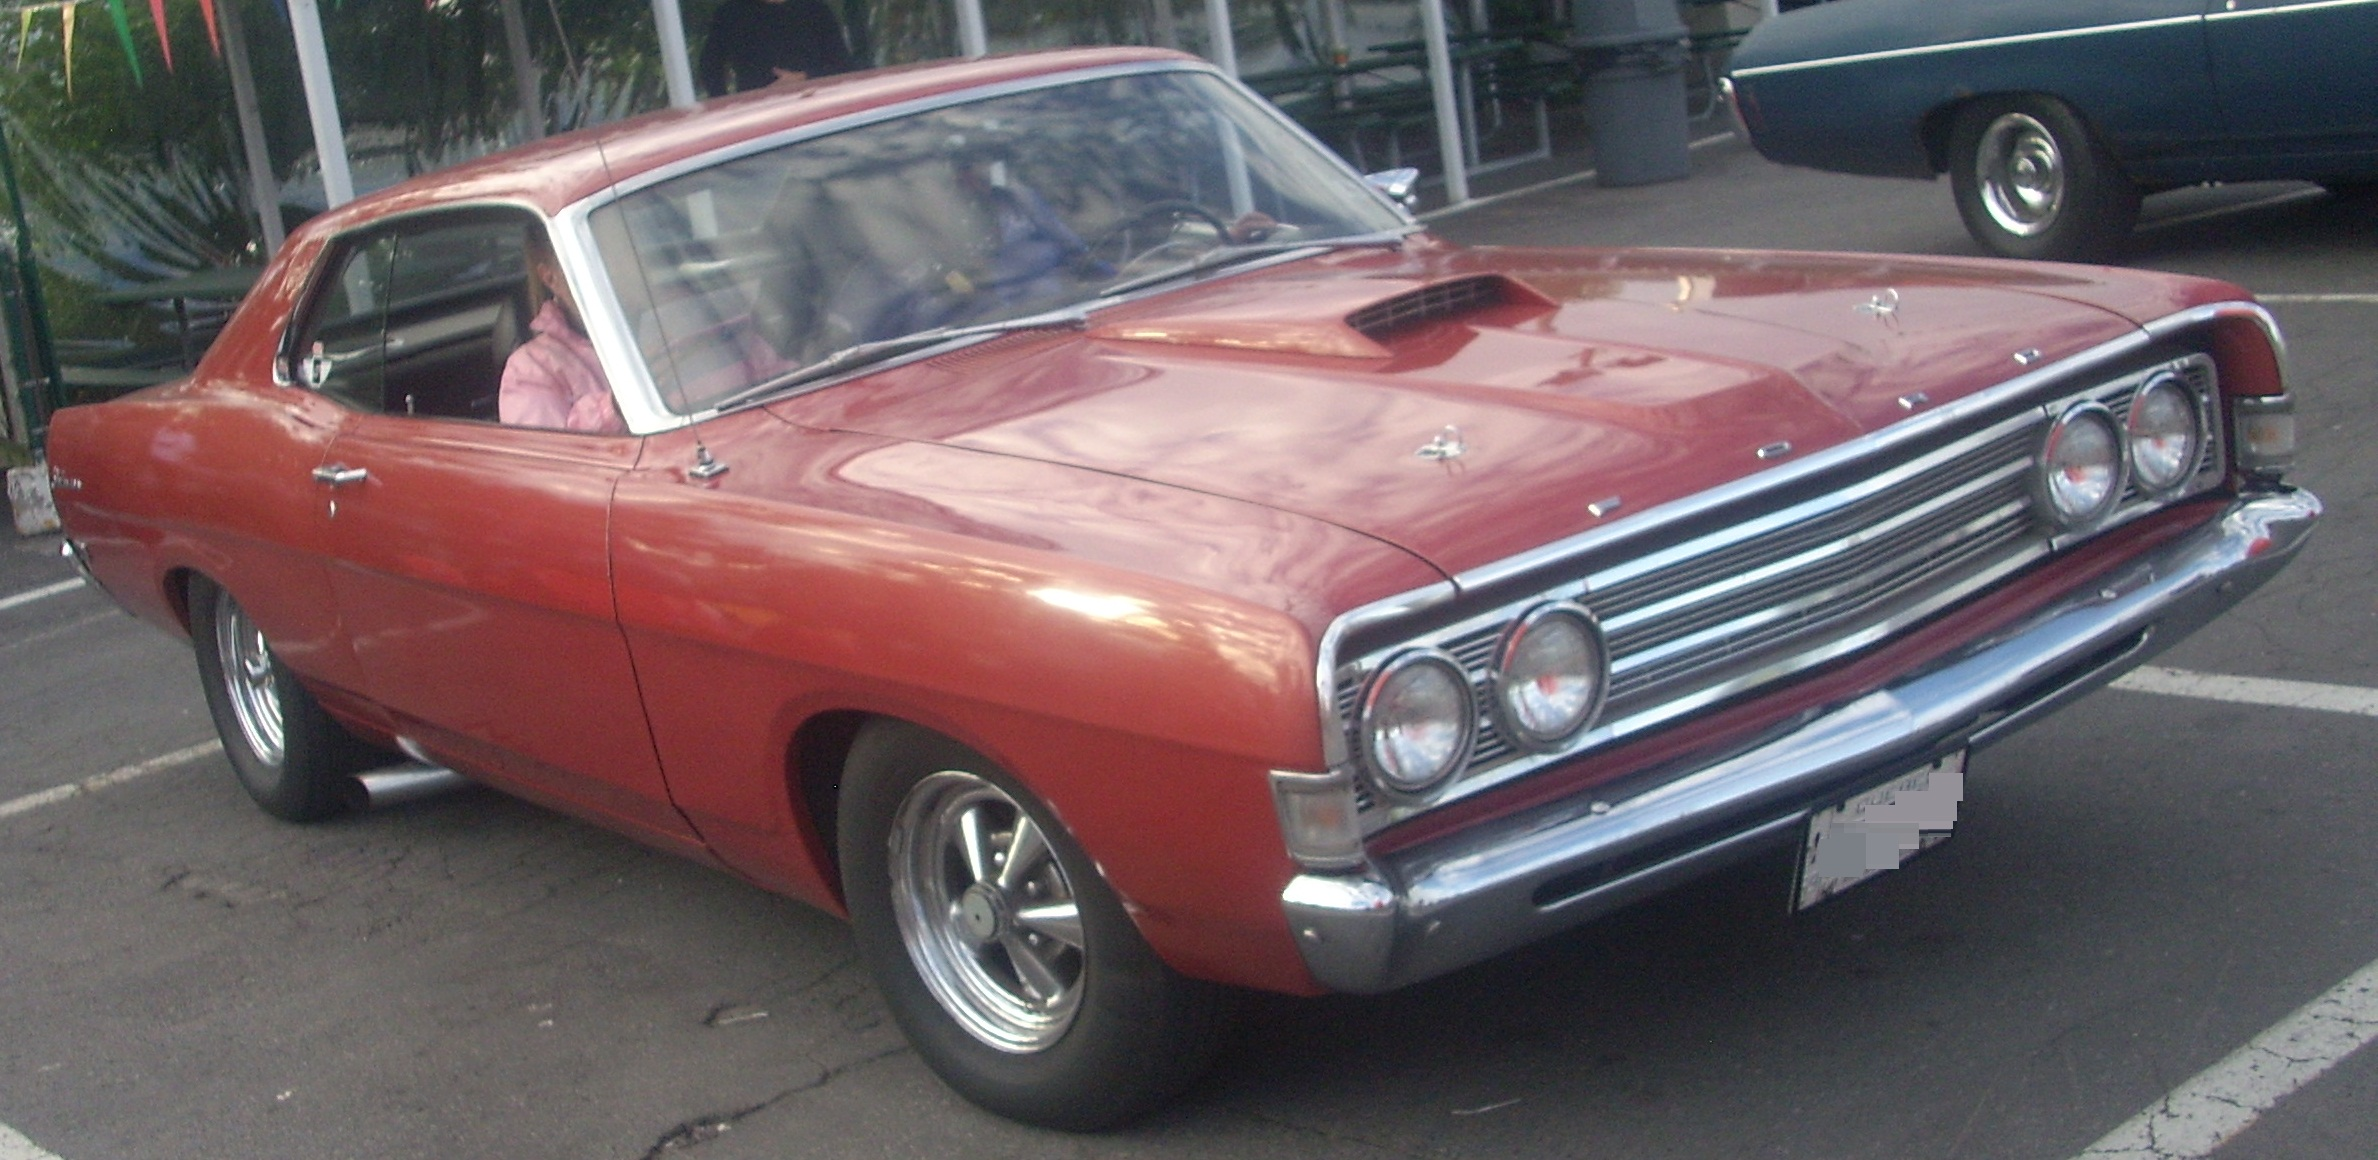 File:1969 Ford Fairlane 2-Door Hardtop jpg - Wikimedia Commons